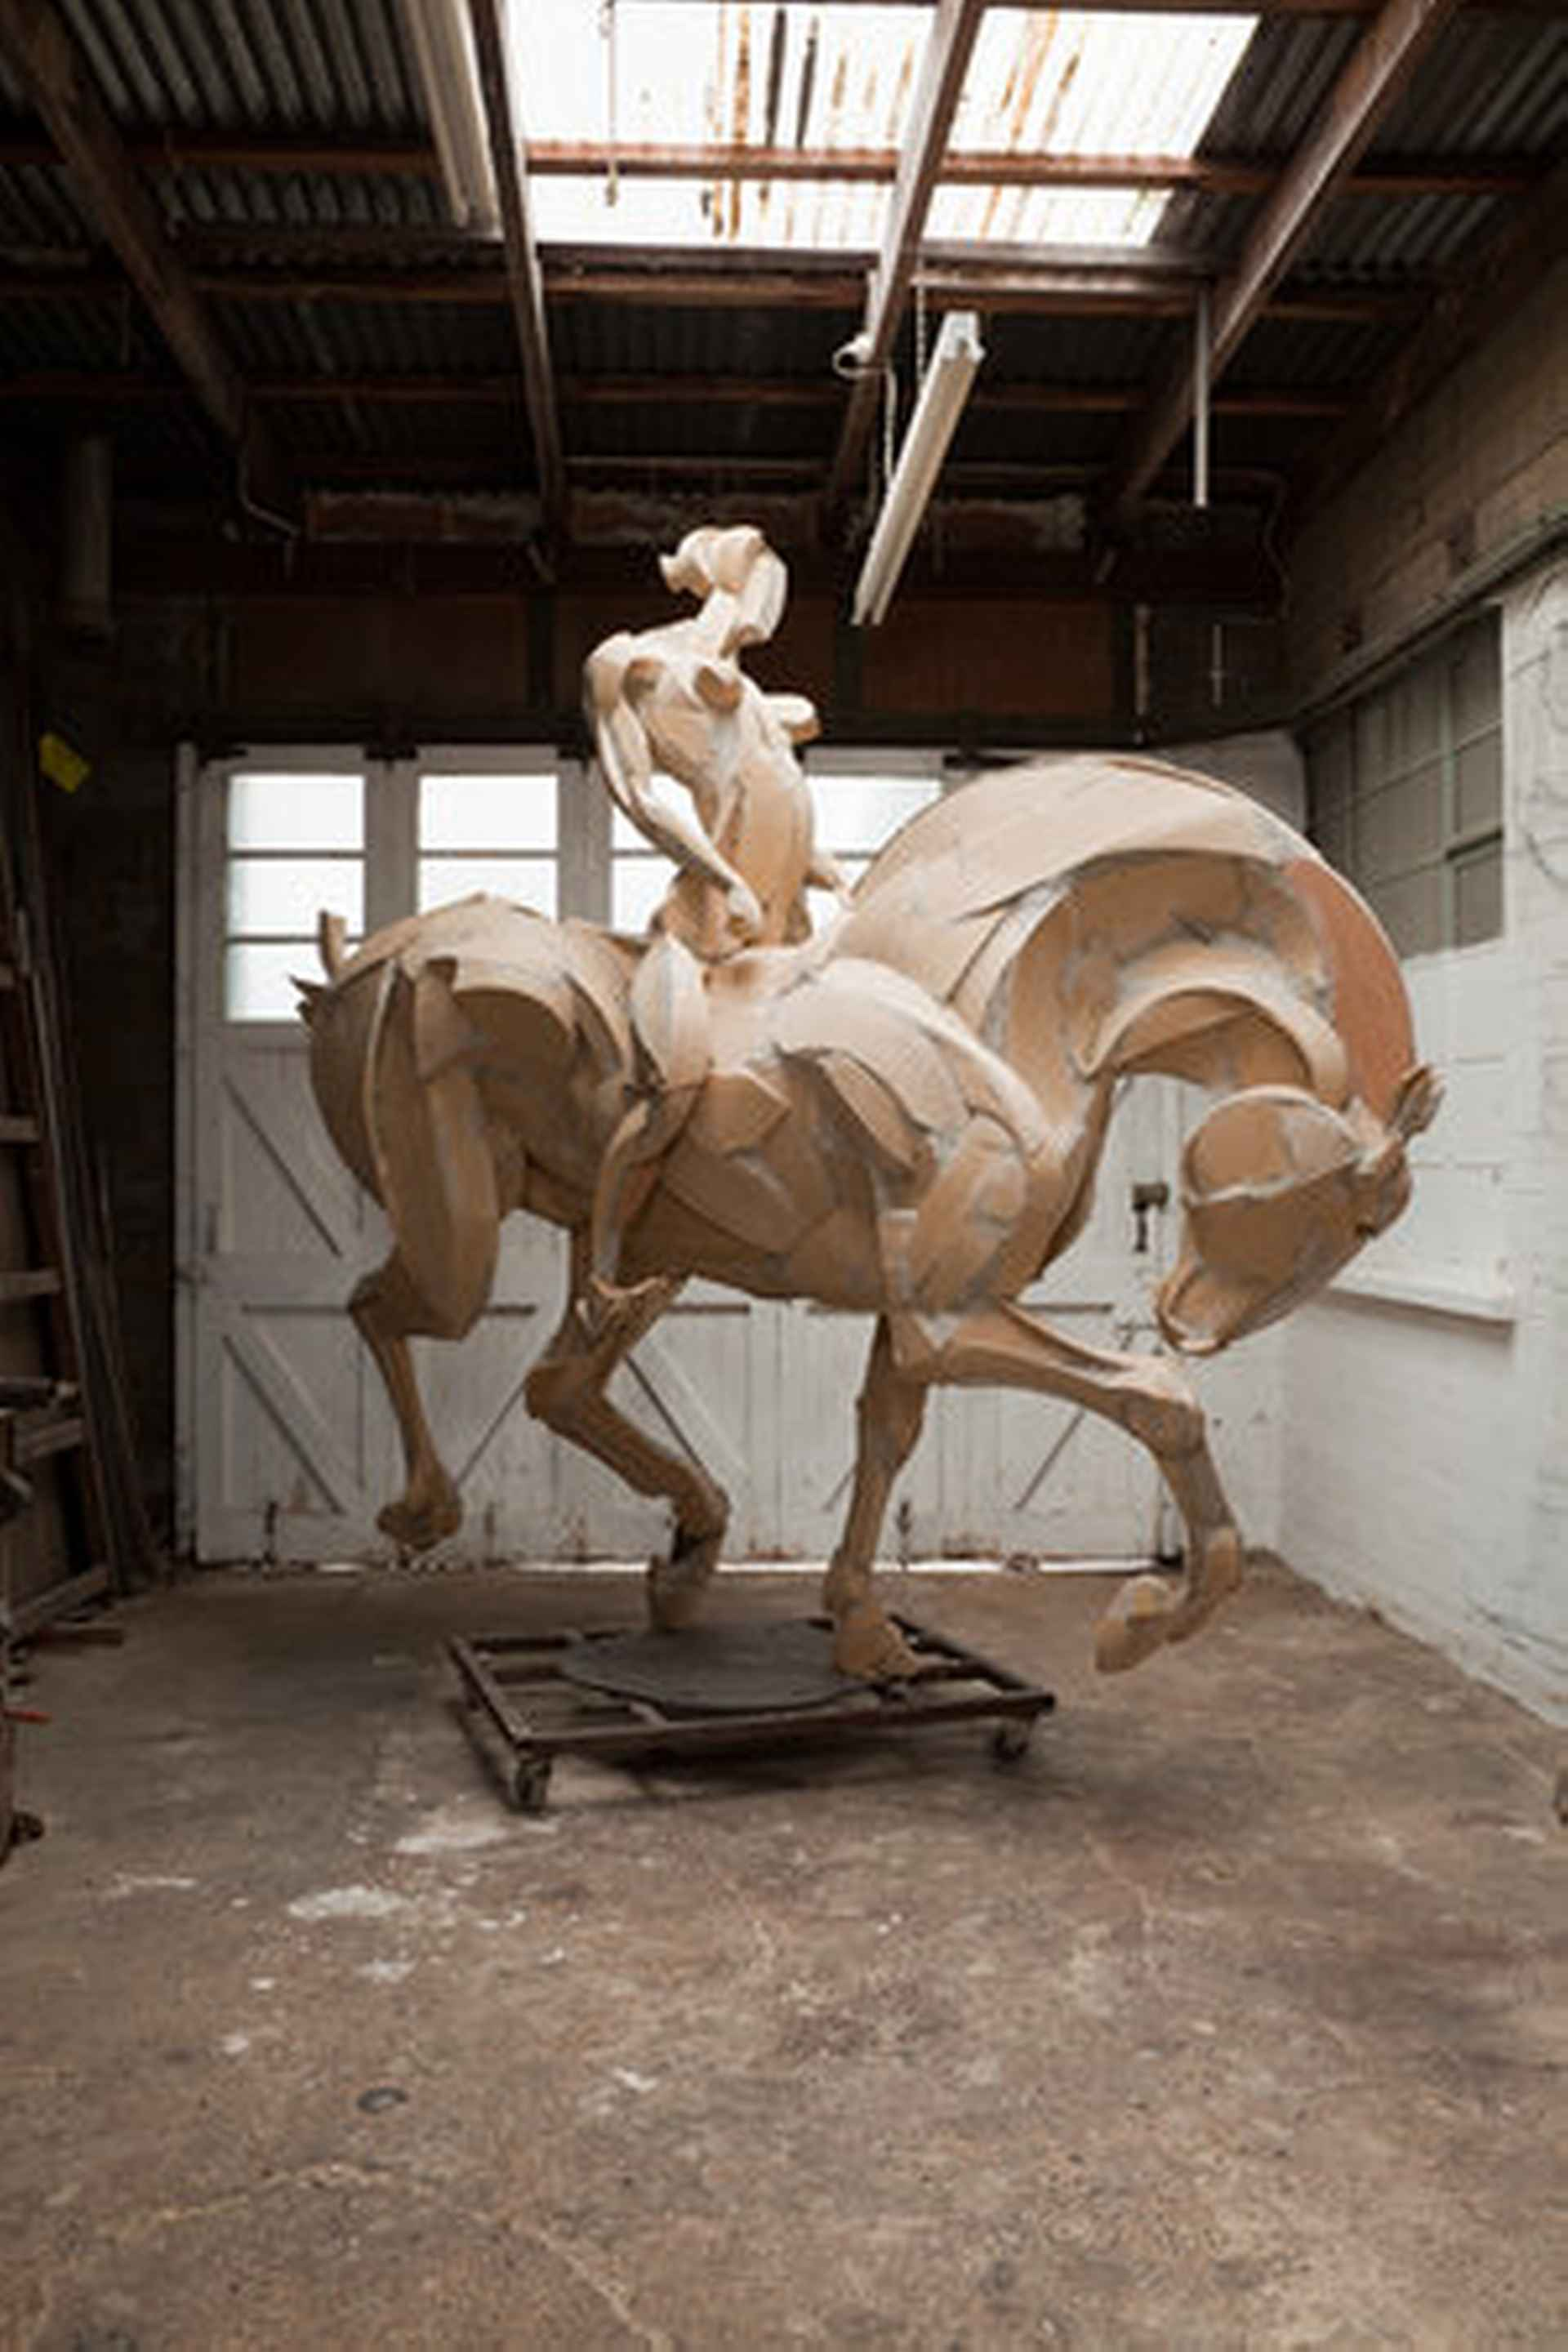 Horse & Rider by Sophie Dickens